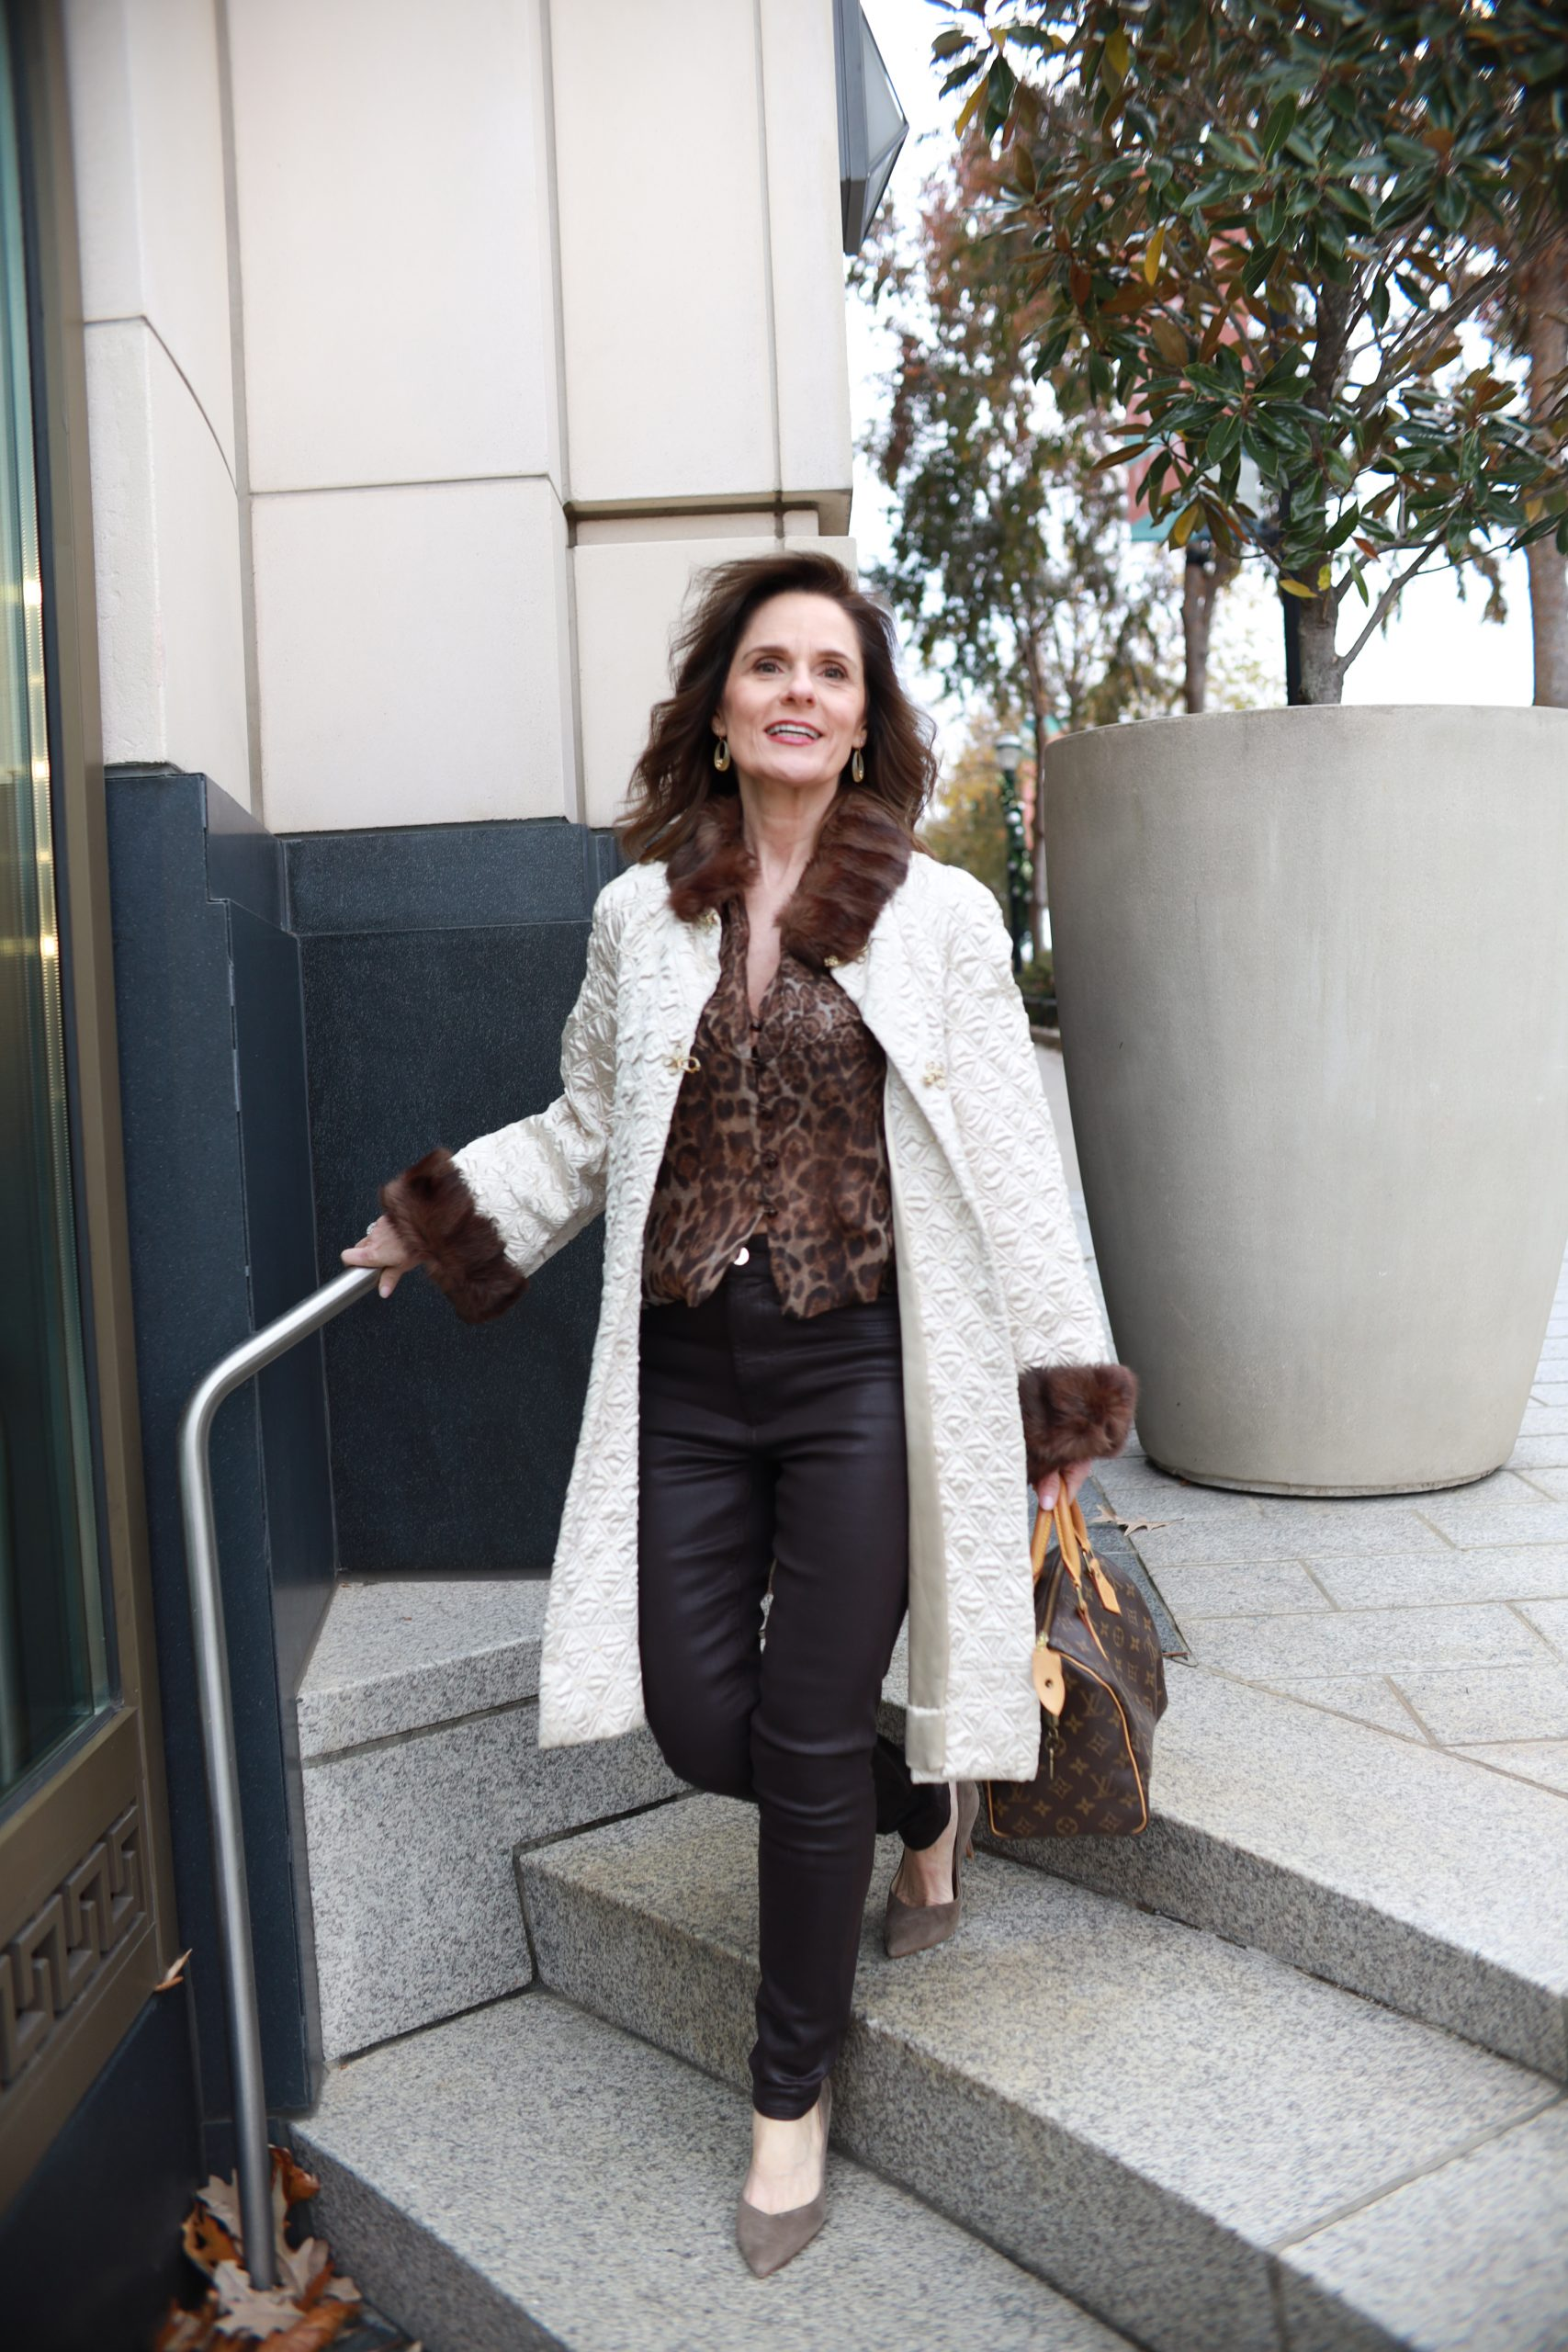 brunette over 50 woman wearing a vintage coat trimmed in fur a leopard print blouse and brown pants walking down an outdoor stairway